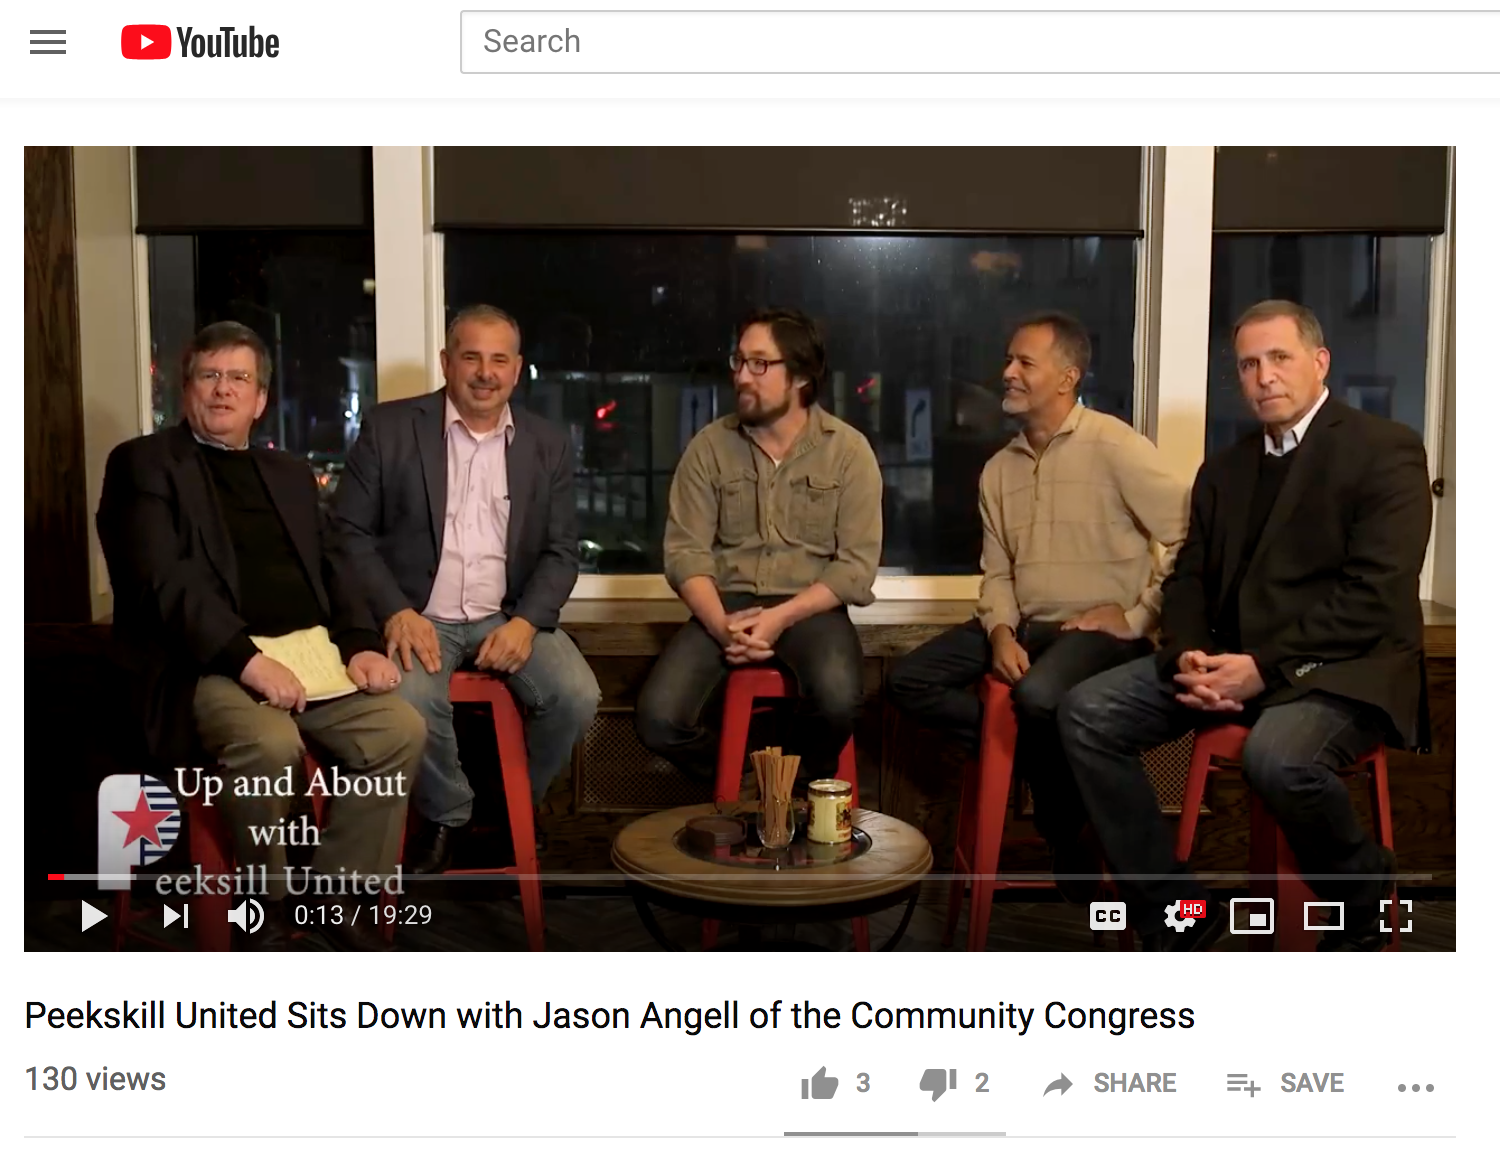 Jason Angell sits down to discuss the PkCC with Peekskill United.